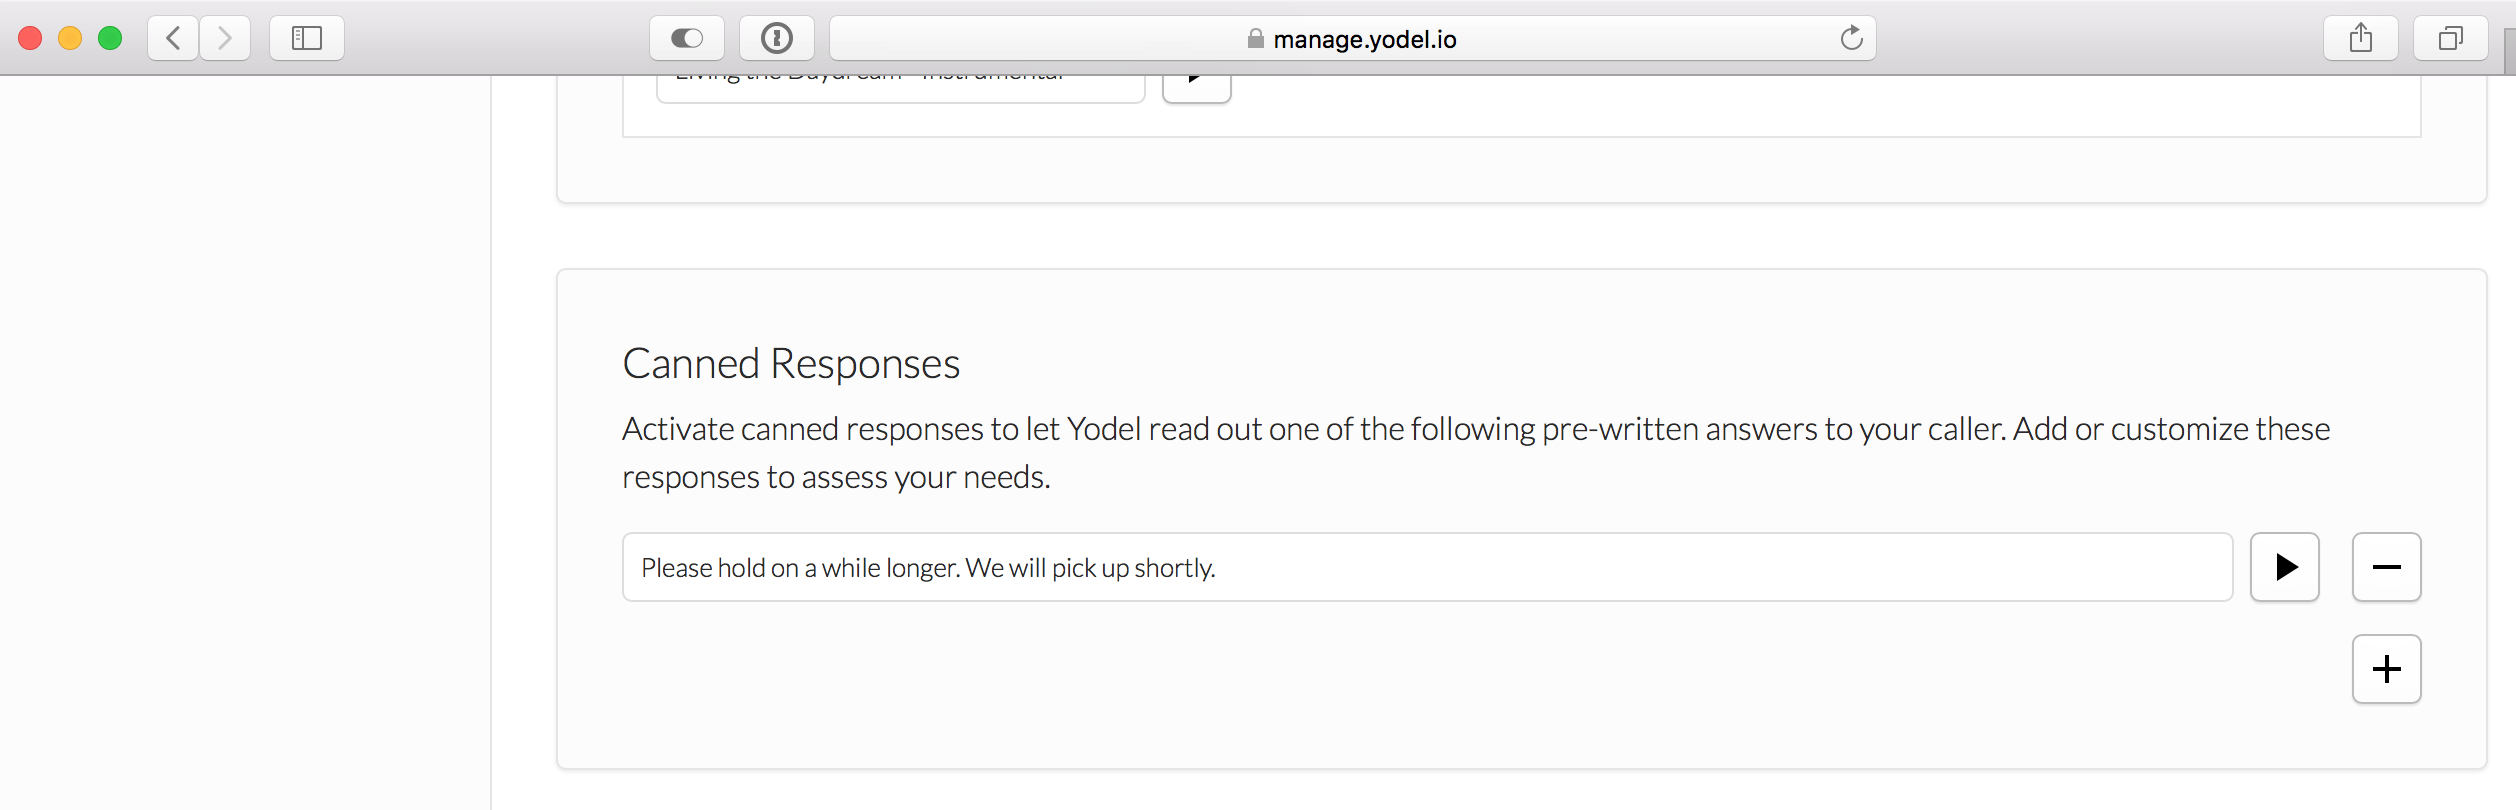 Canned Responses Feature — Yodel